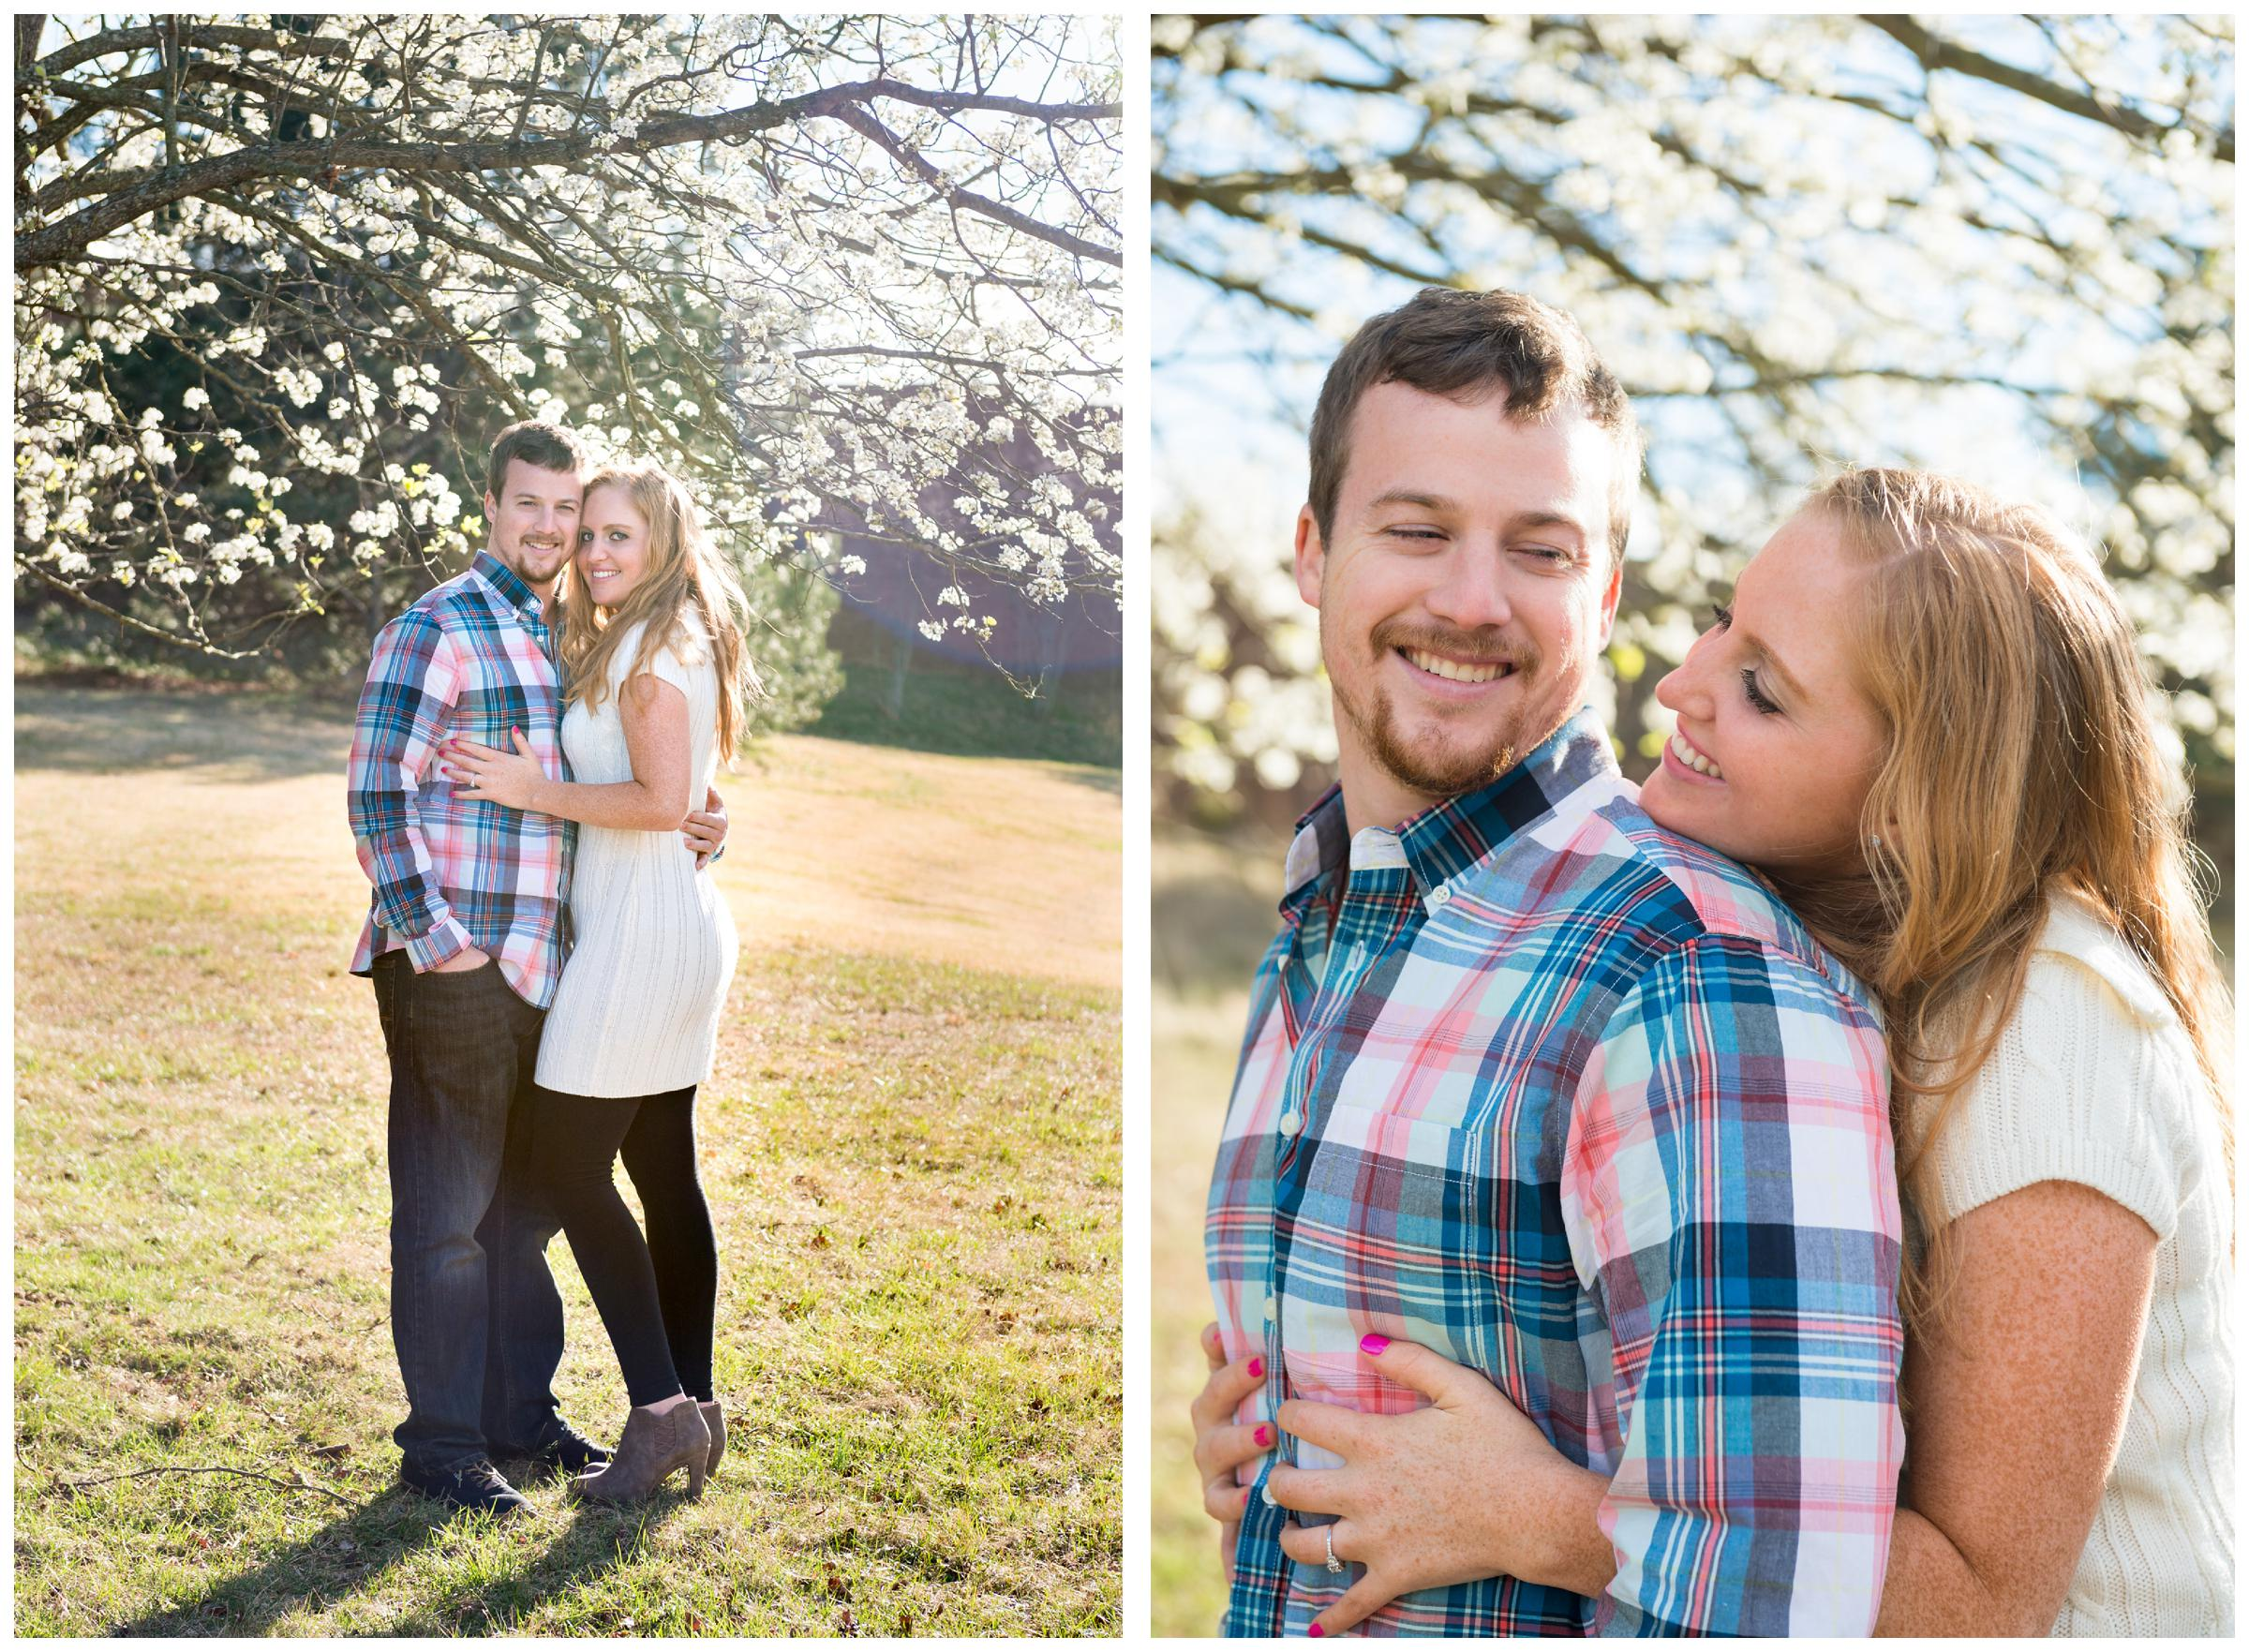 engaged couple under cherry blossom tree during engagement session in Rockville, Maryland